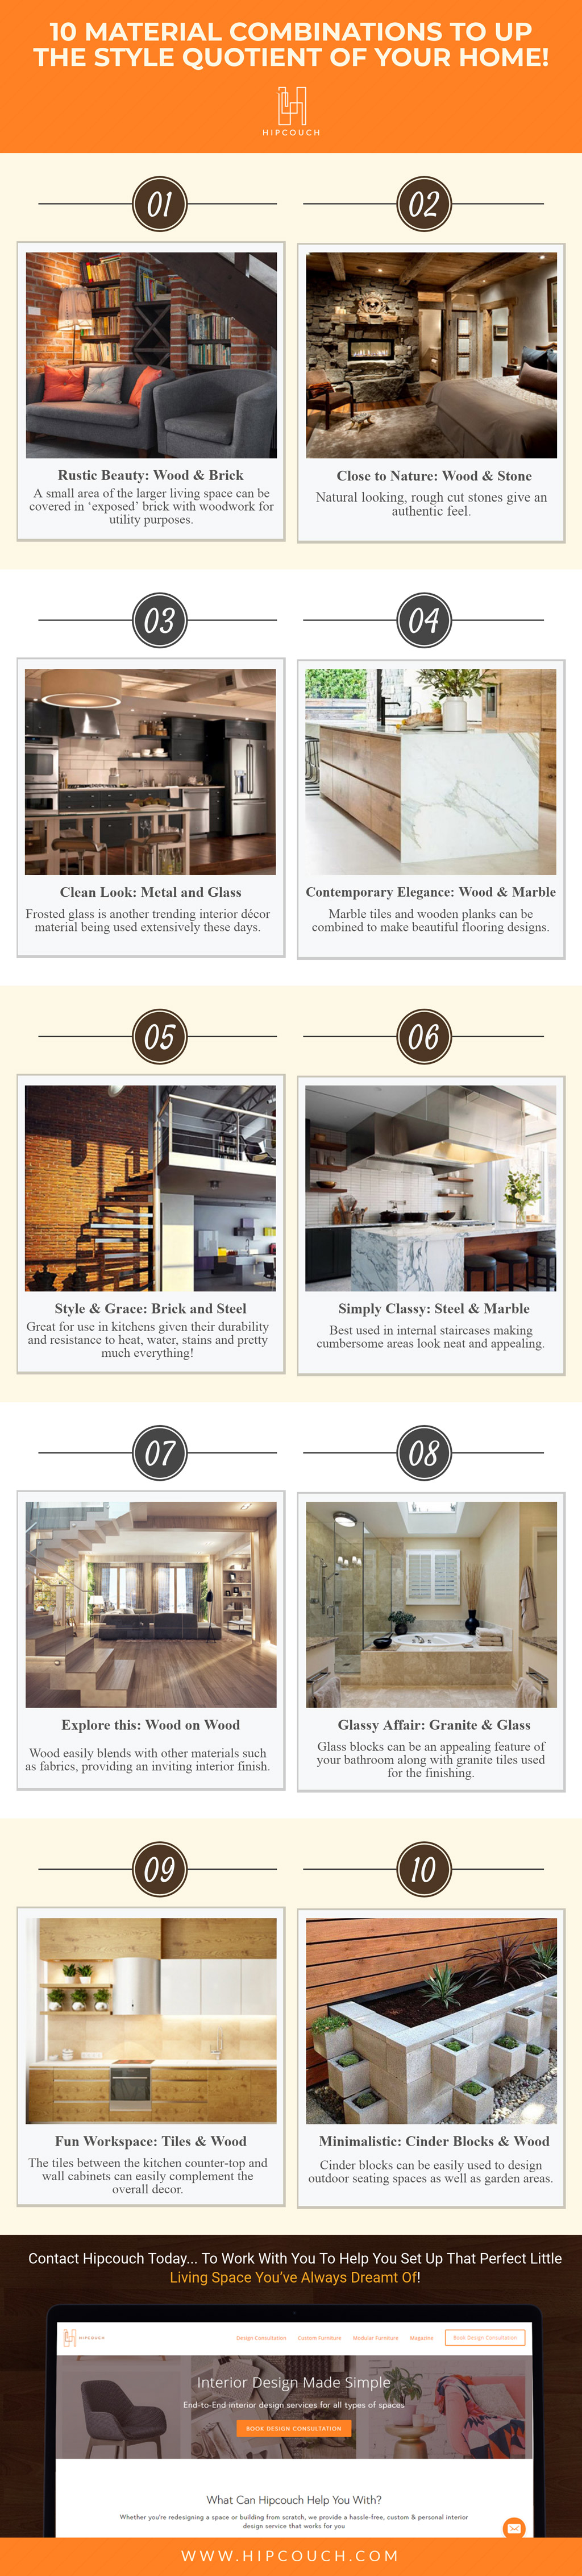 10 Winning Material Combinations For A Stylish Abode!